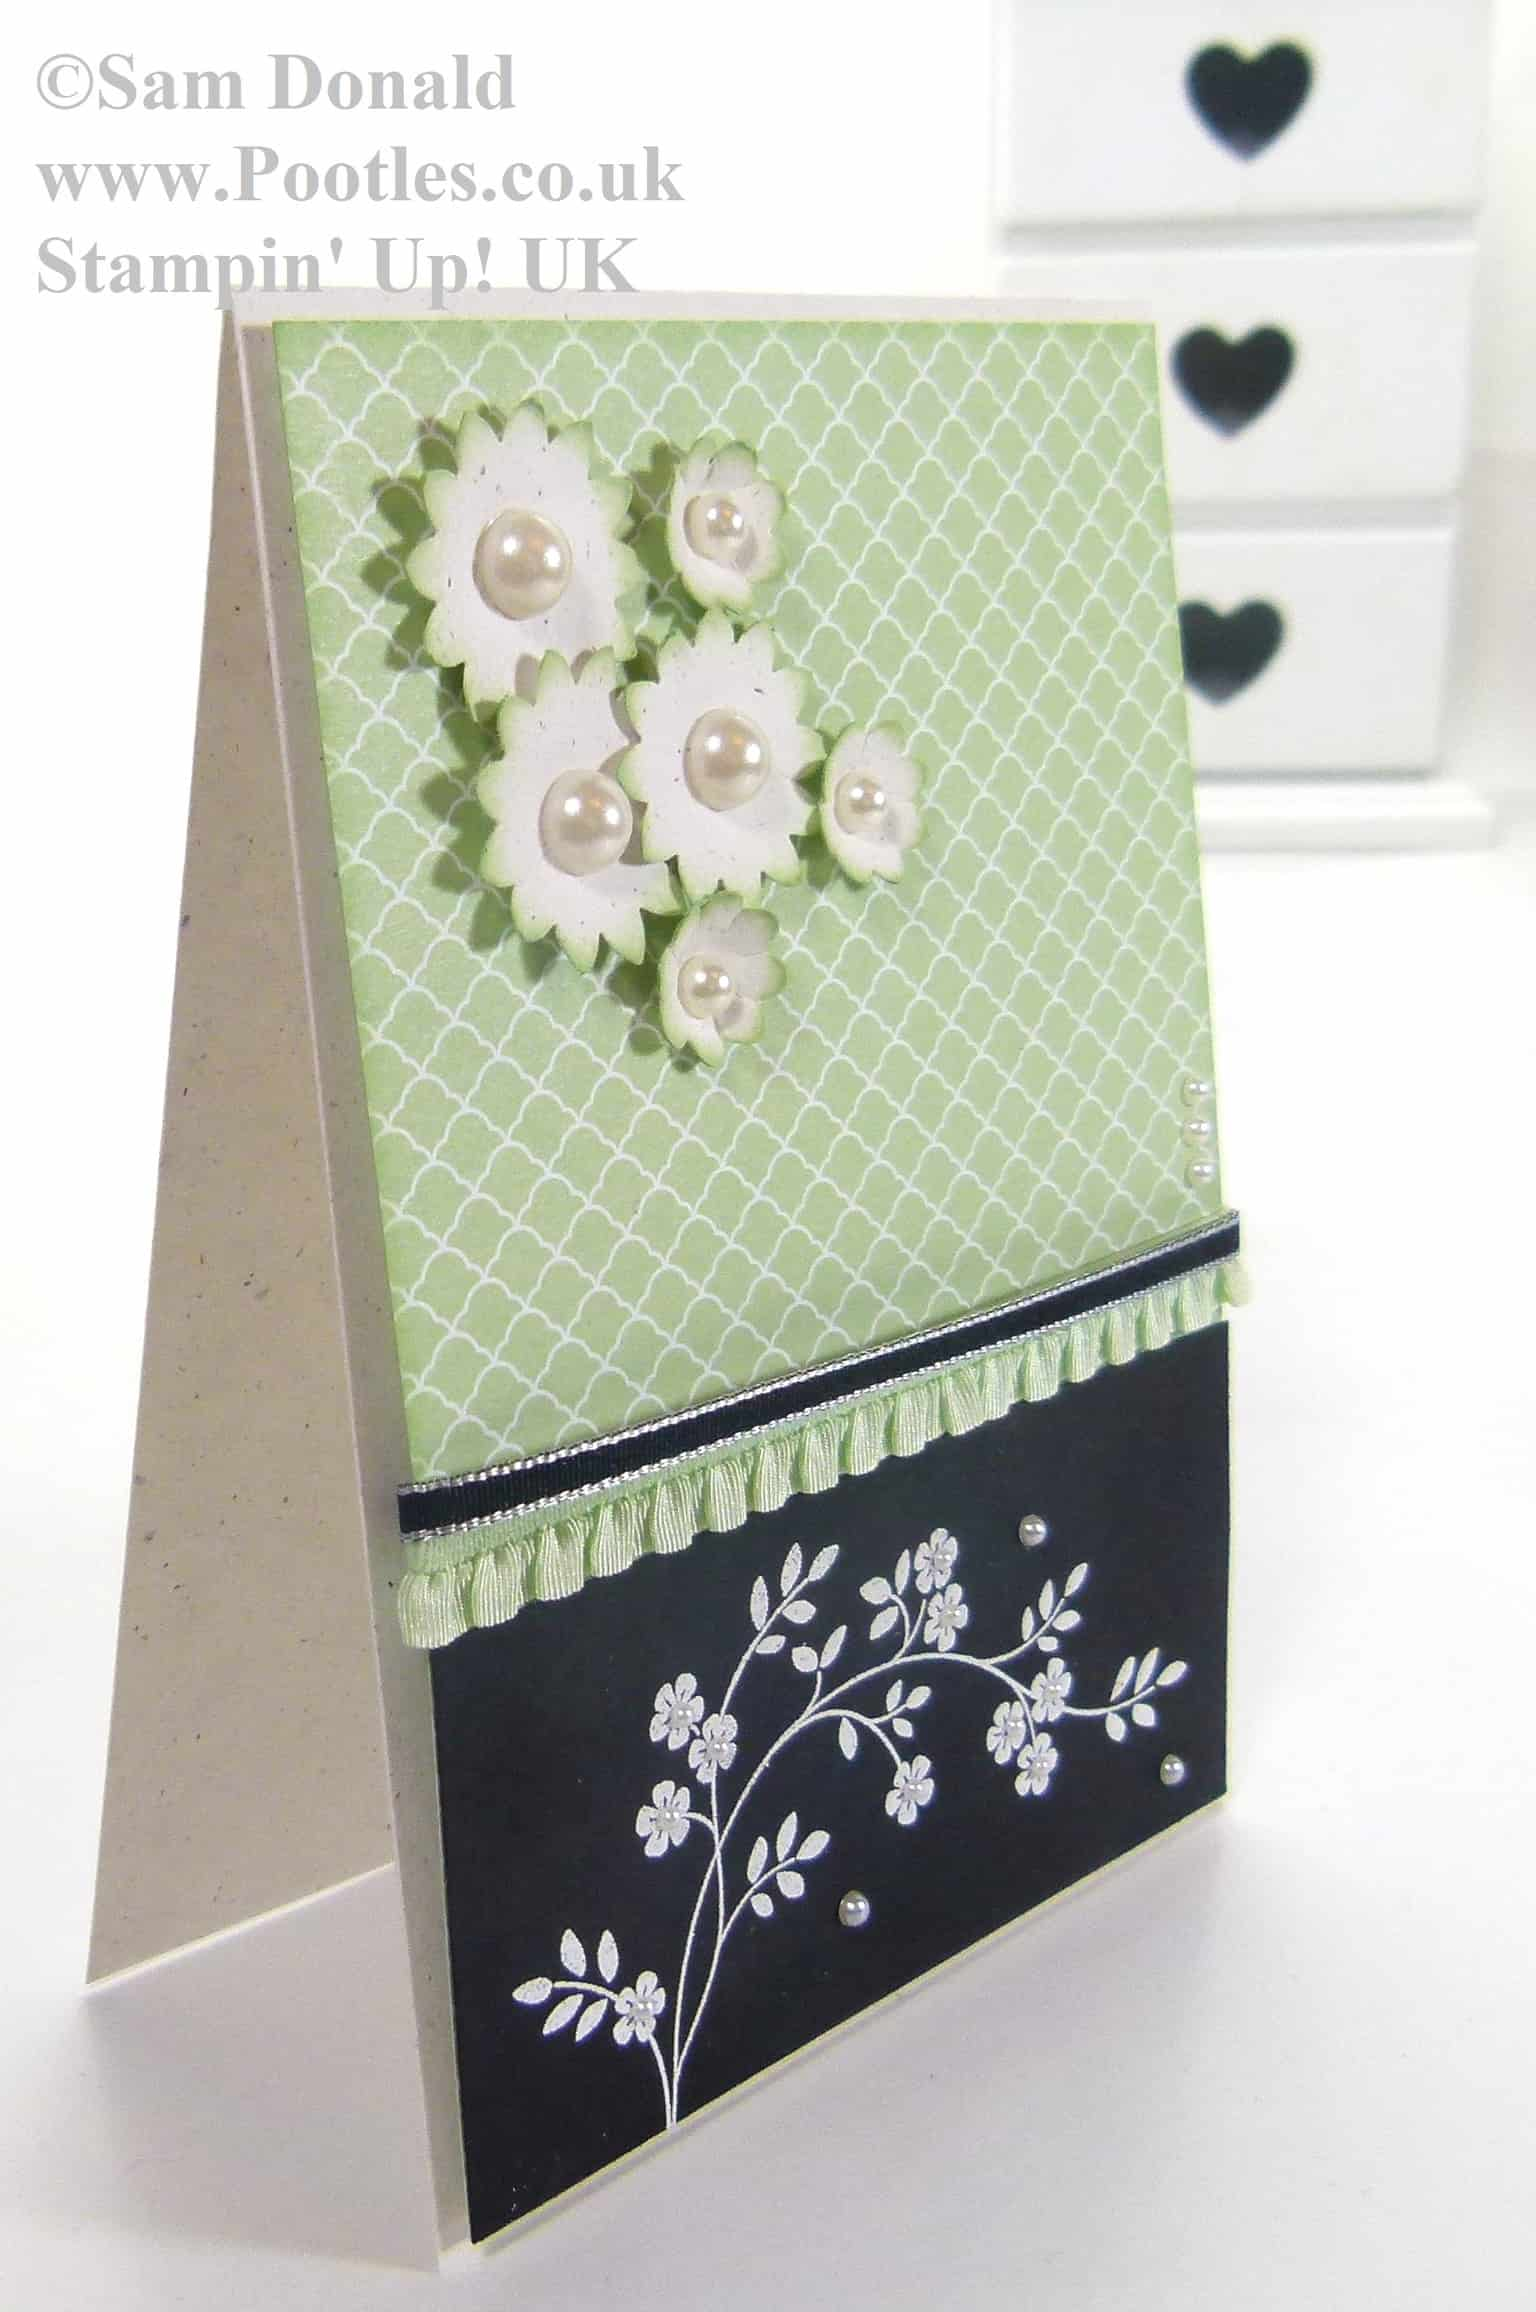 Stampin' Up! UK Pistachio Pudding Heat Embossed Hopeful Thoughts 3